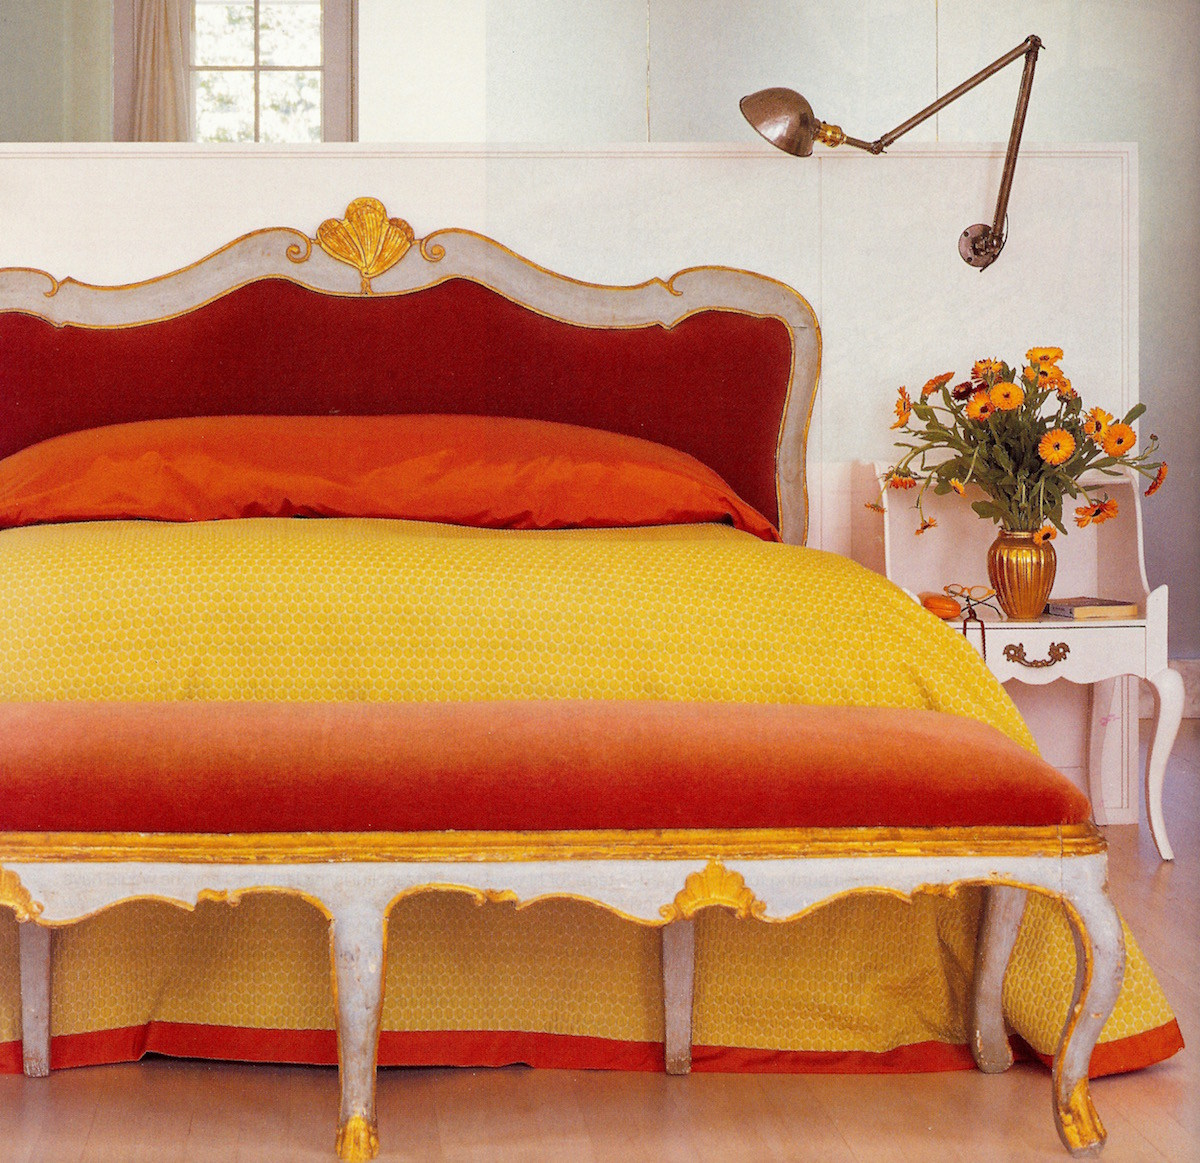 ombré - yellow and orange ombré illusion bedspread, headboard and foot bench in Donghia fabric - ElleDecor via Atticmag